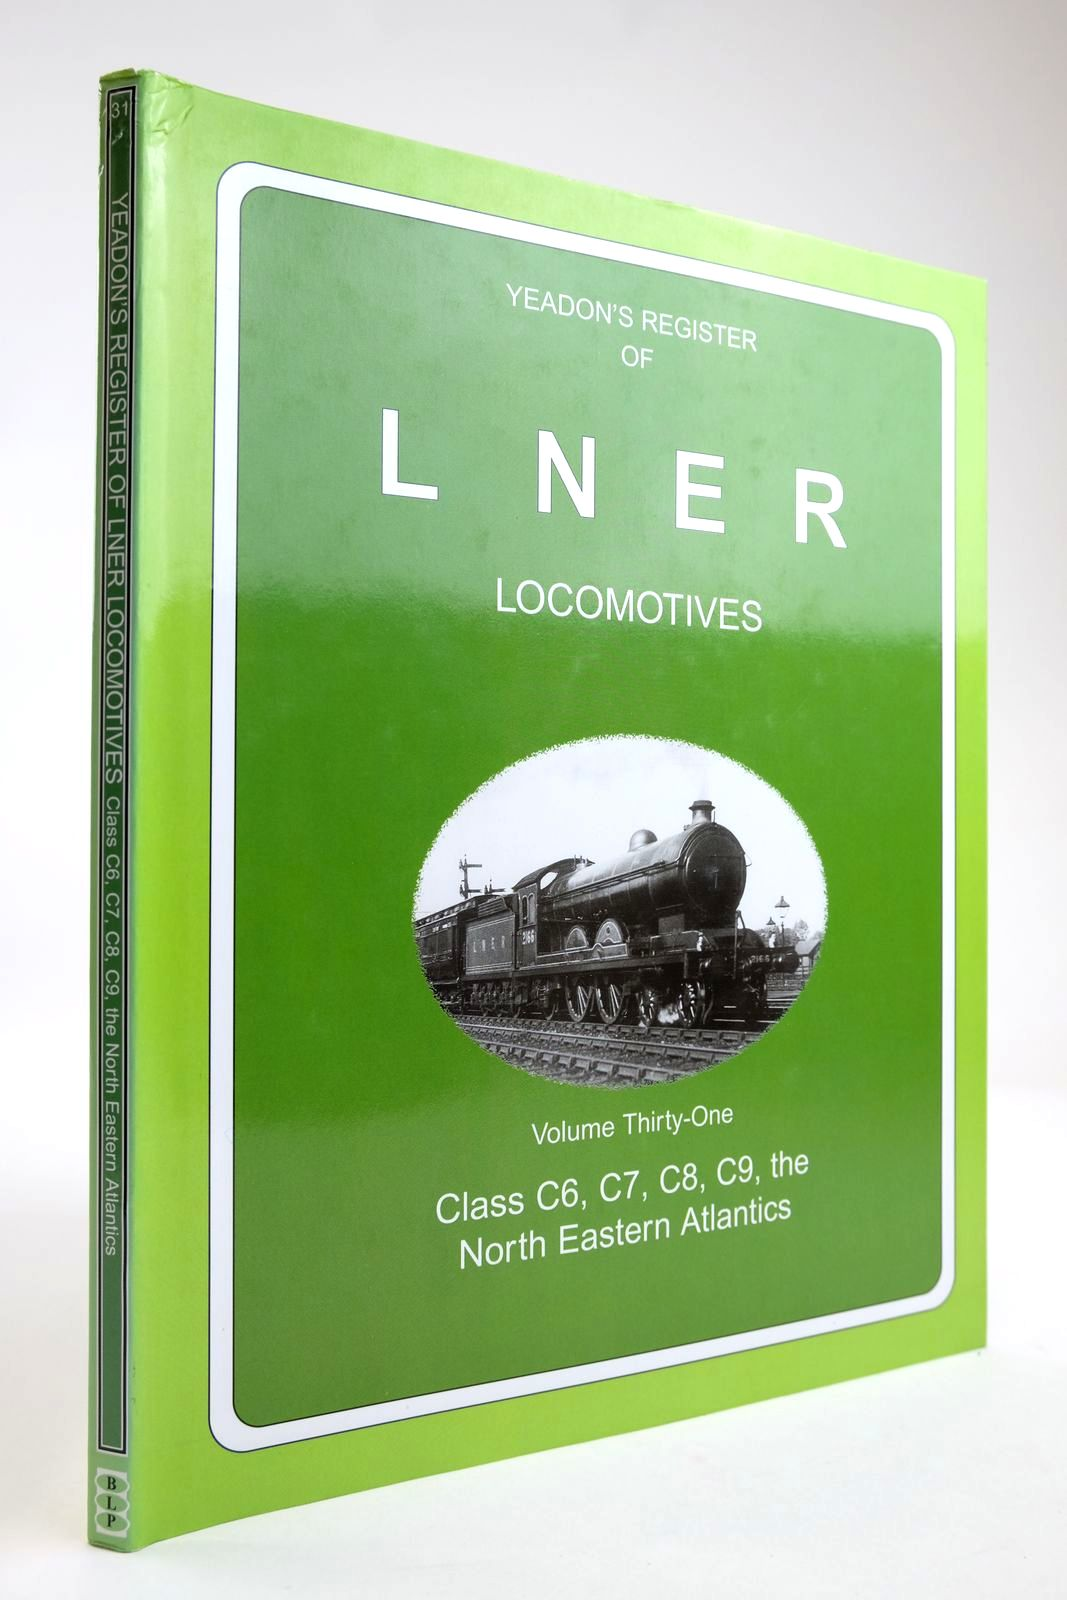 Photo of YEADON'S REGISTER OF LNER LOCOMOTIVES VOLUME THIRTY-ONE- Stock Number: 2133583